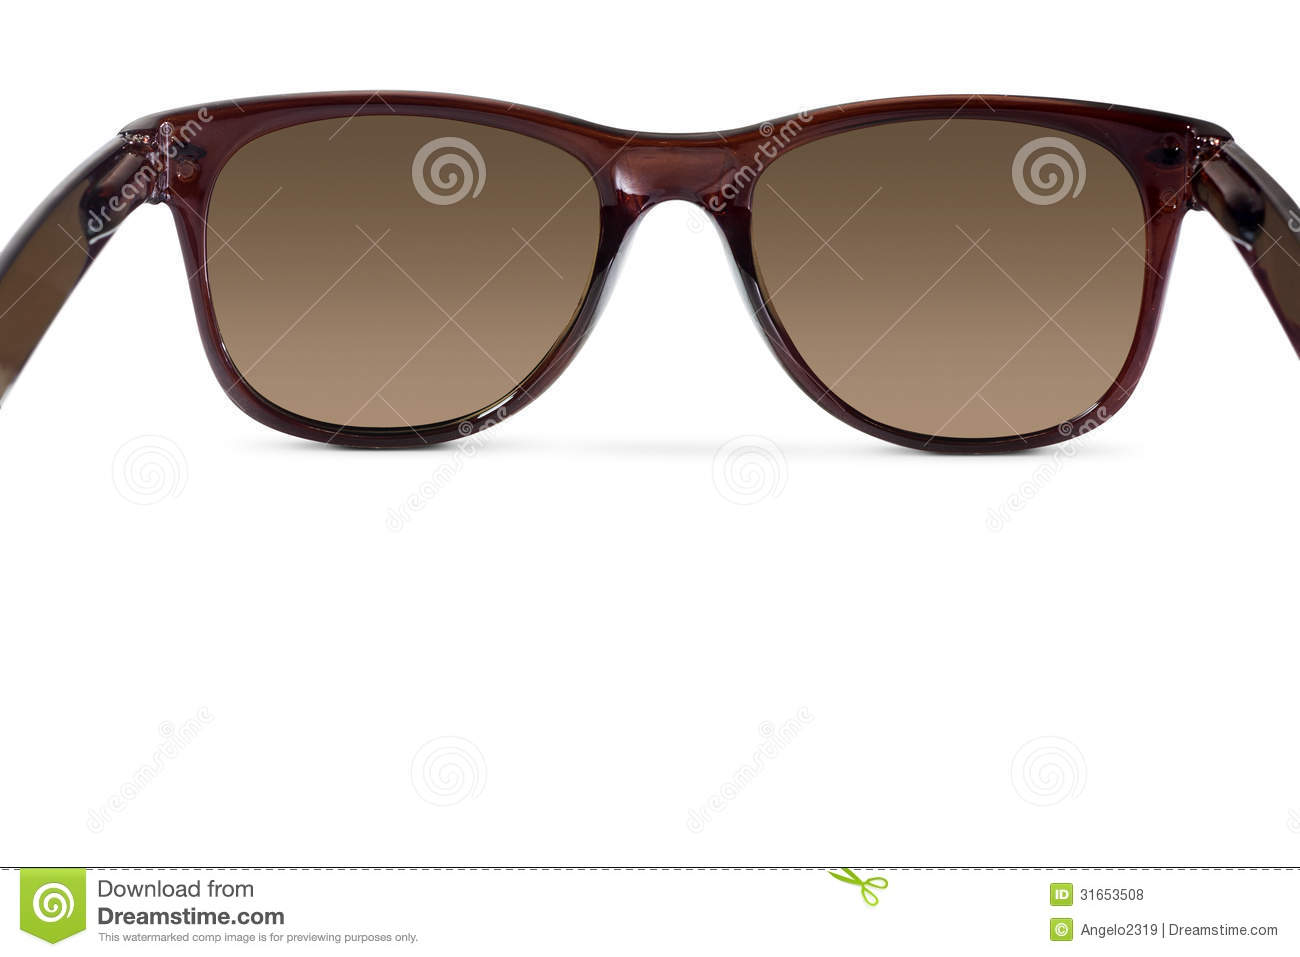 can you fix scratches on oakley lenses louisiana